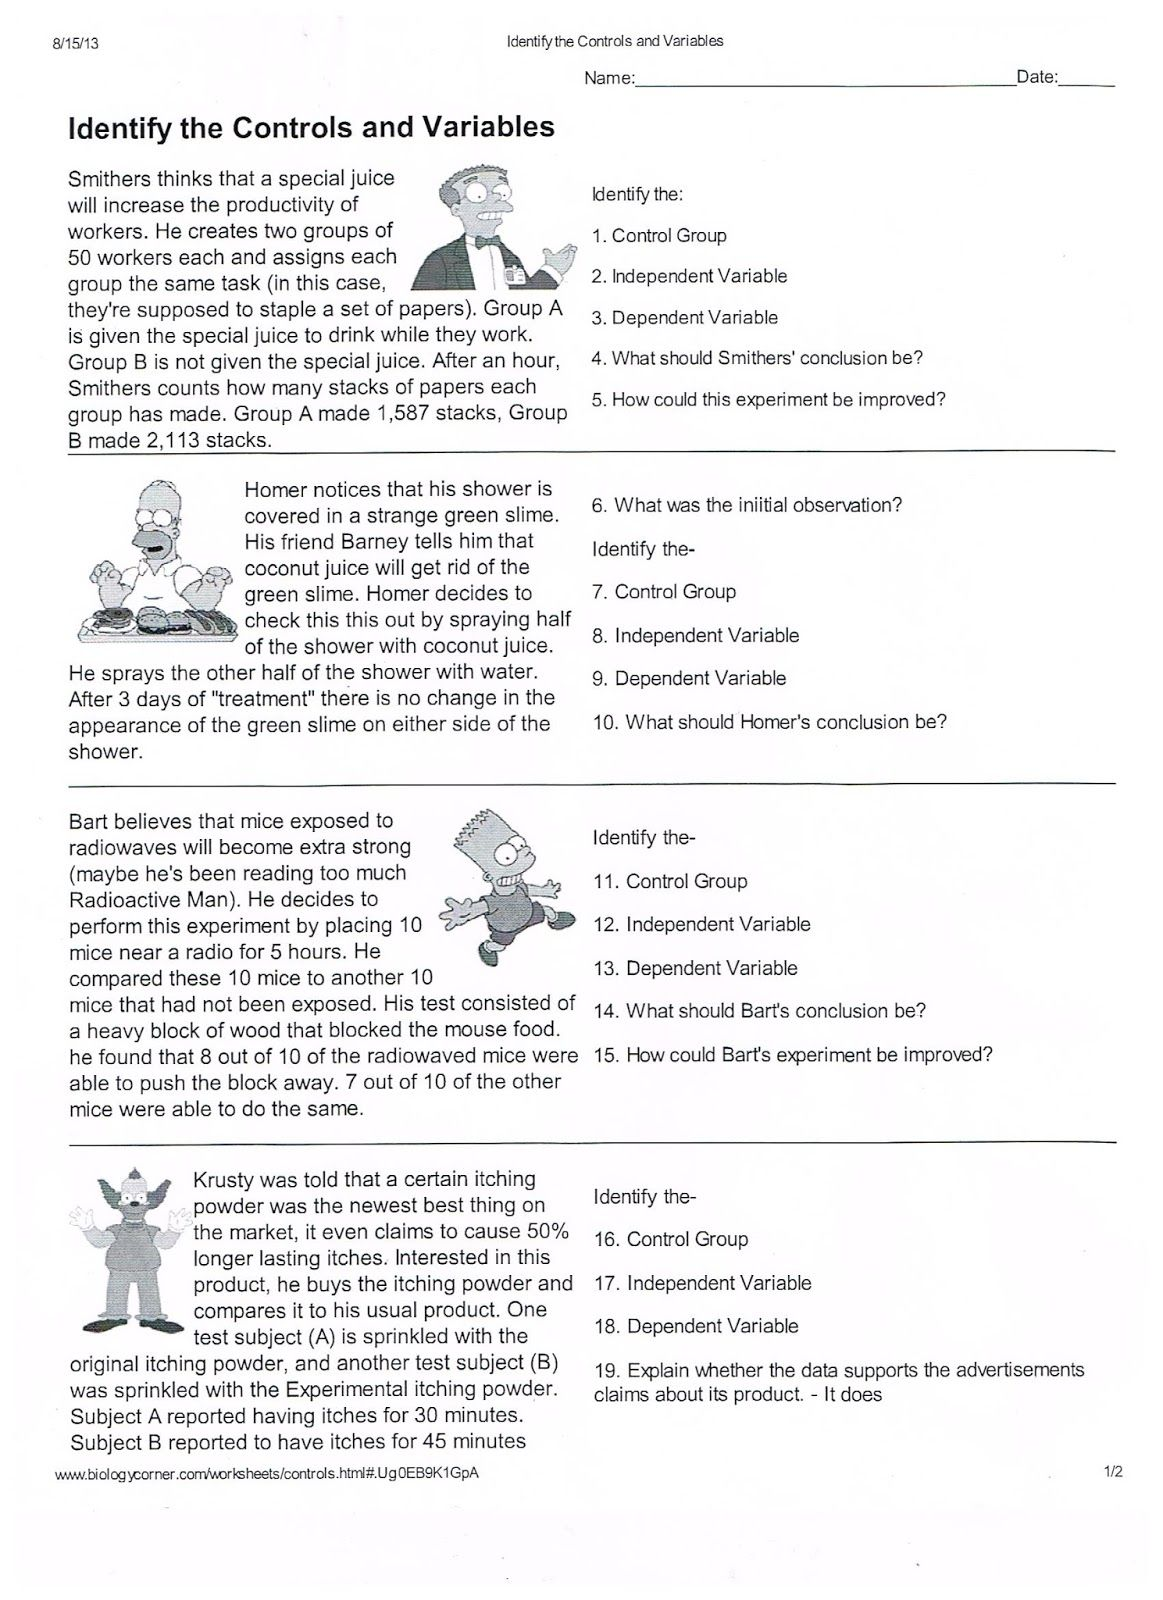 Hypothesis Worksheet For 5th Grade